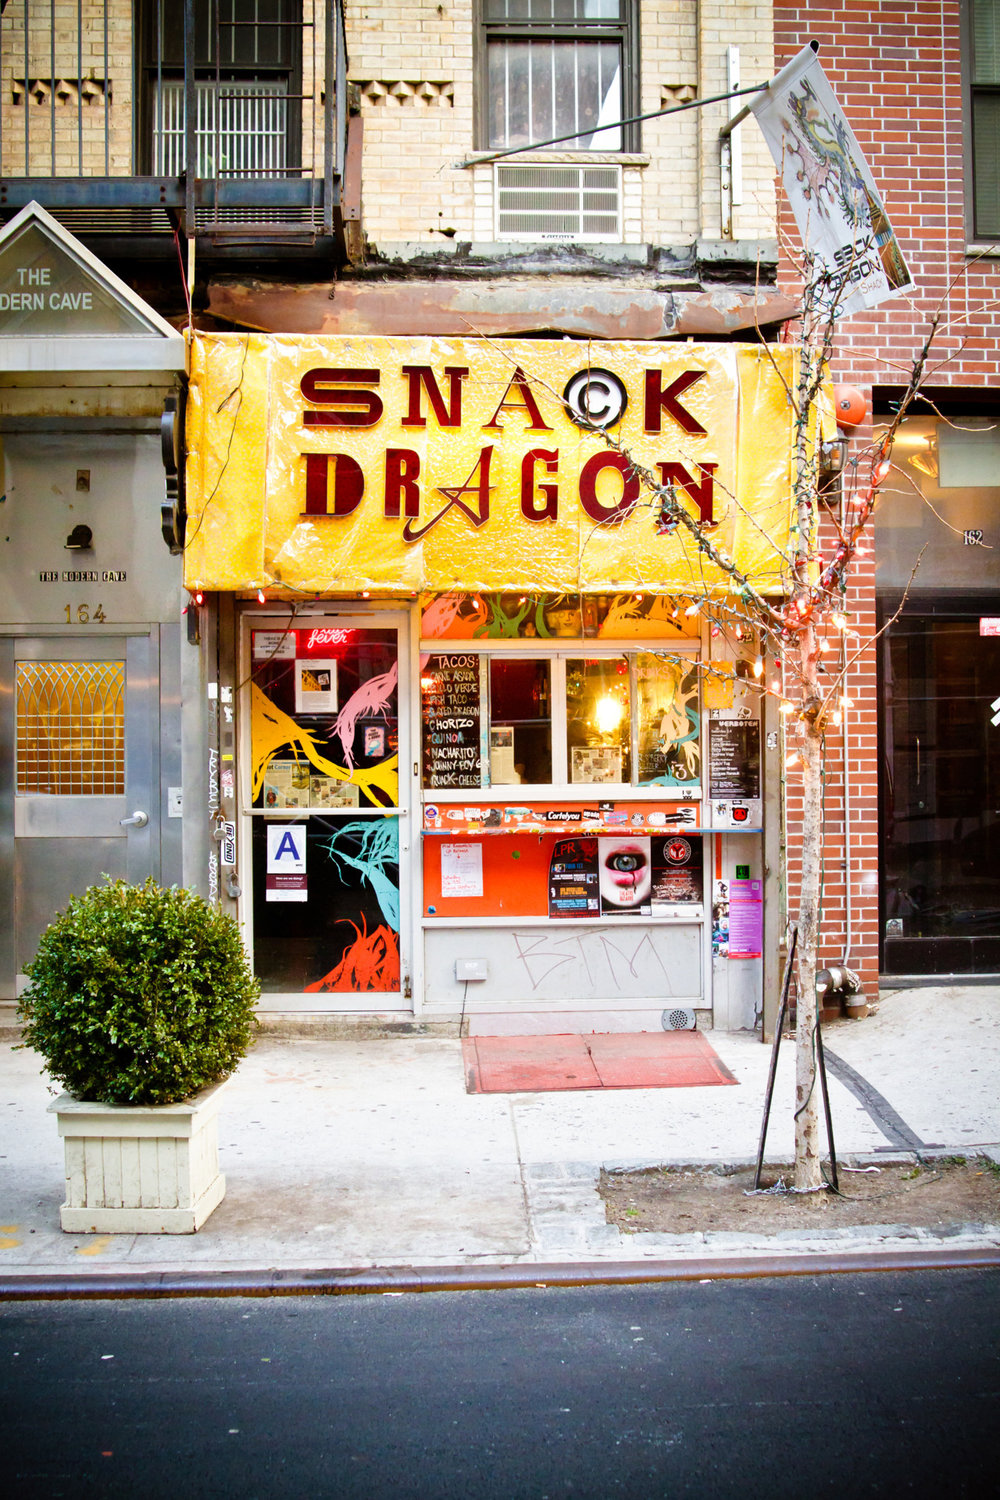 56 - Snack Dragon   #366Project